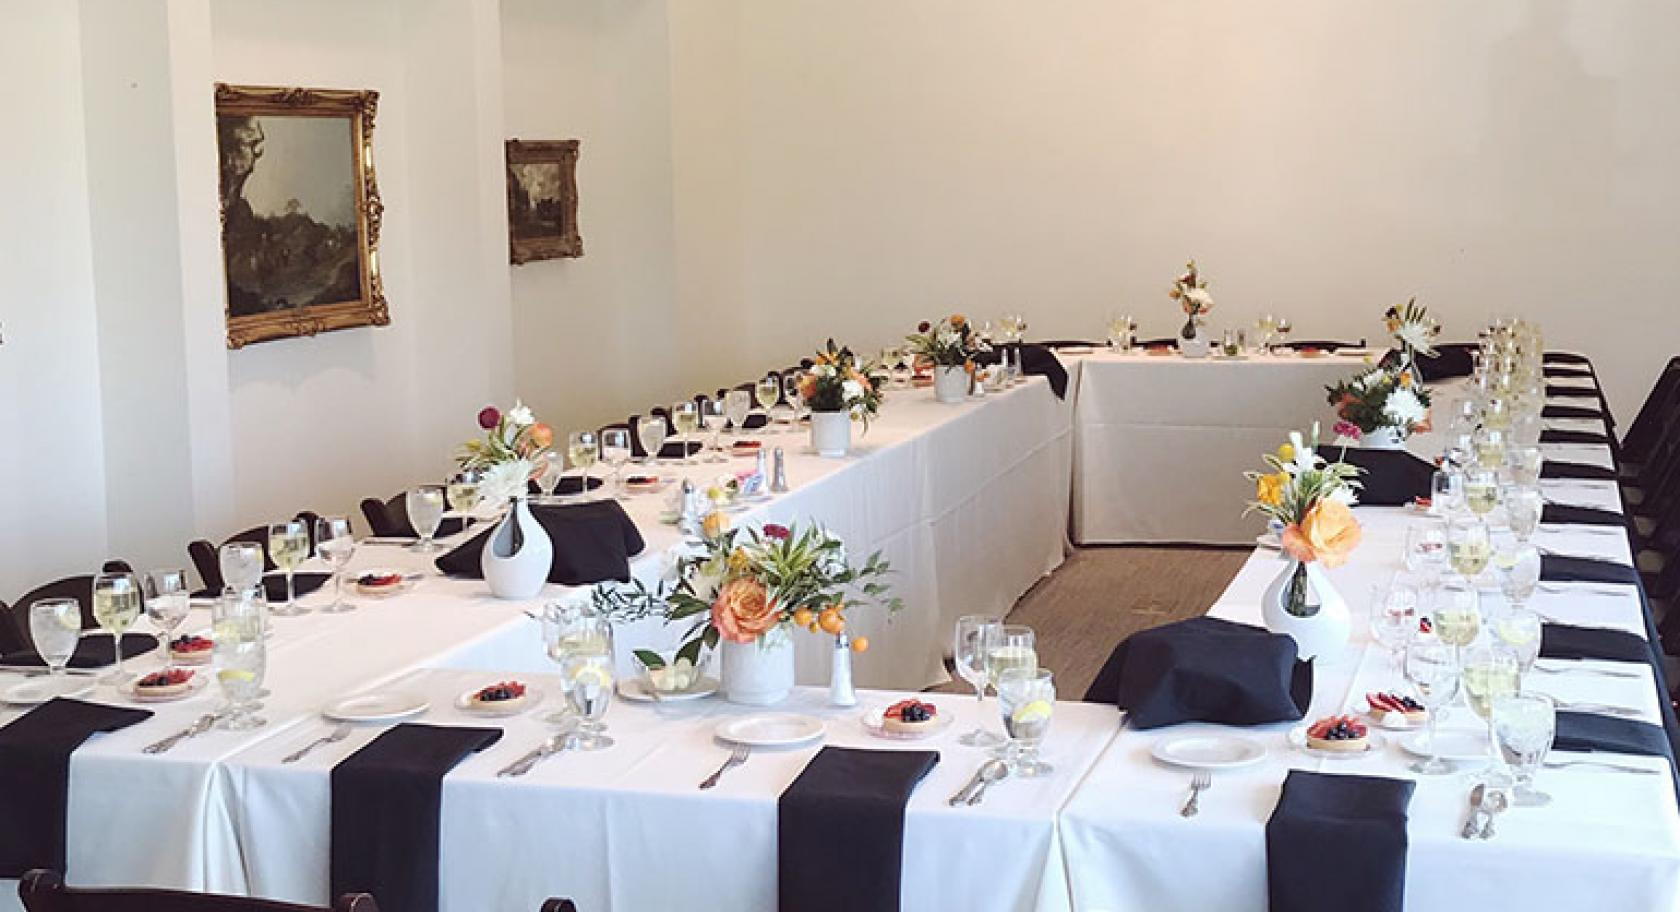 Boardroom meeting space set for dinner flowers full place settings white and black linnens